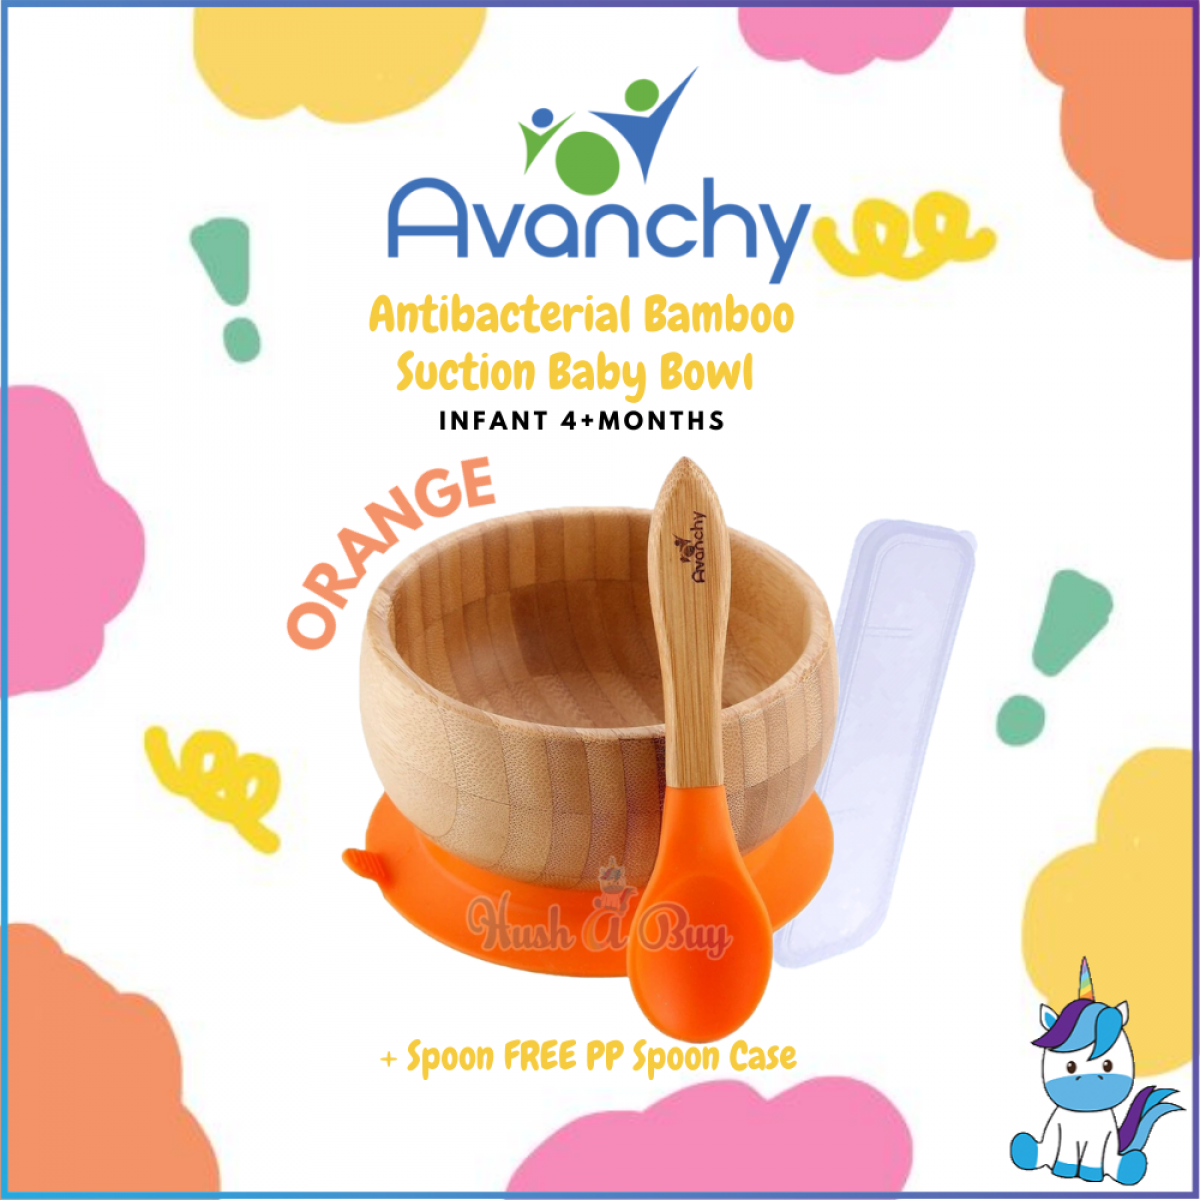 Avanchy Antibacterial Bamboo Suction Baby Bowl + Spoon FREE PP Spoon Case